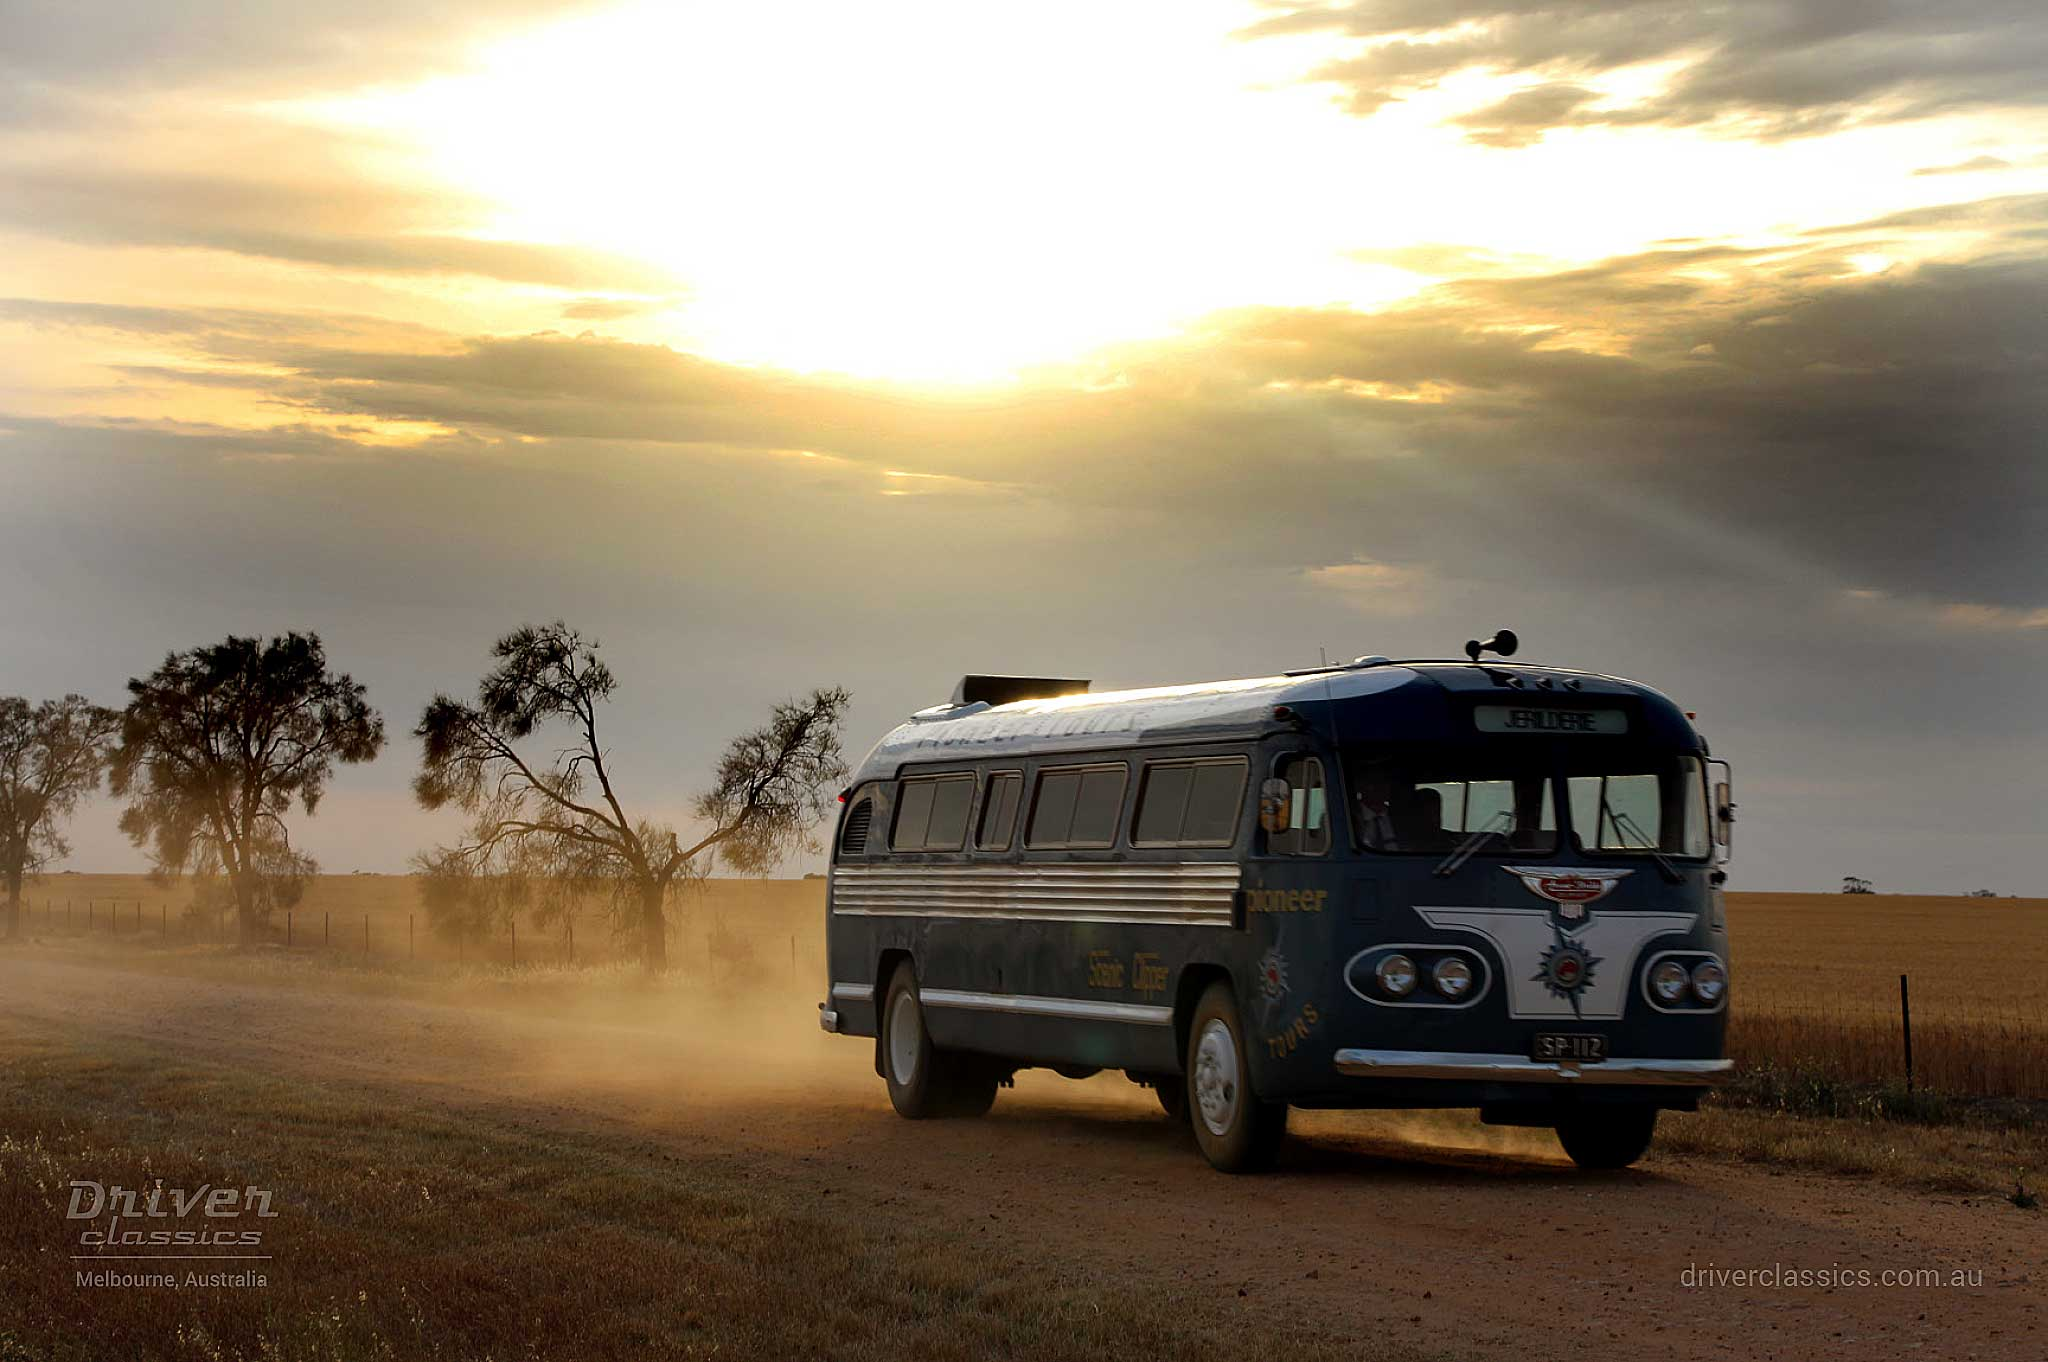 Flxible Clipper bus (1954 version) in sunset, on set of The Dressmaker movie. Photo taken Feb 2015.